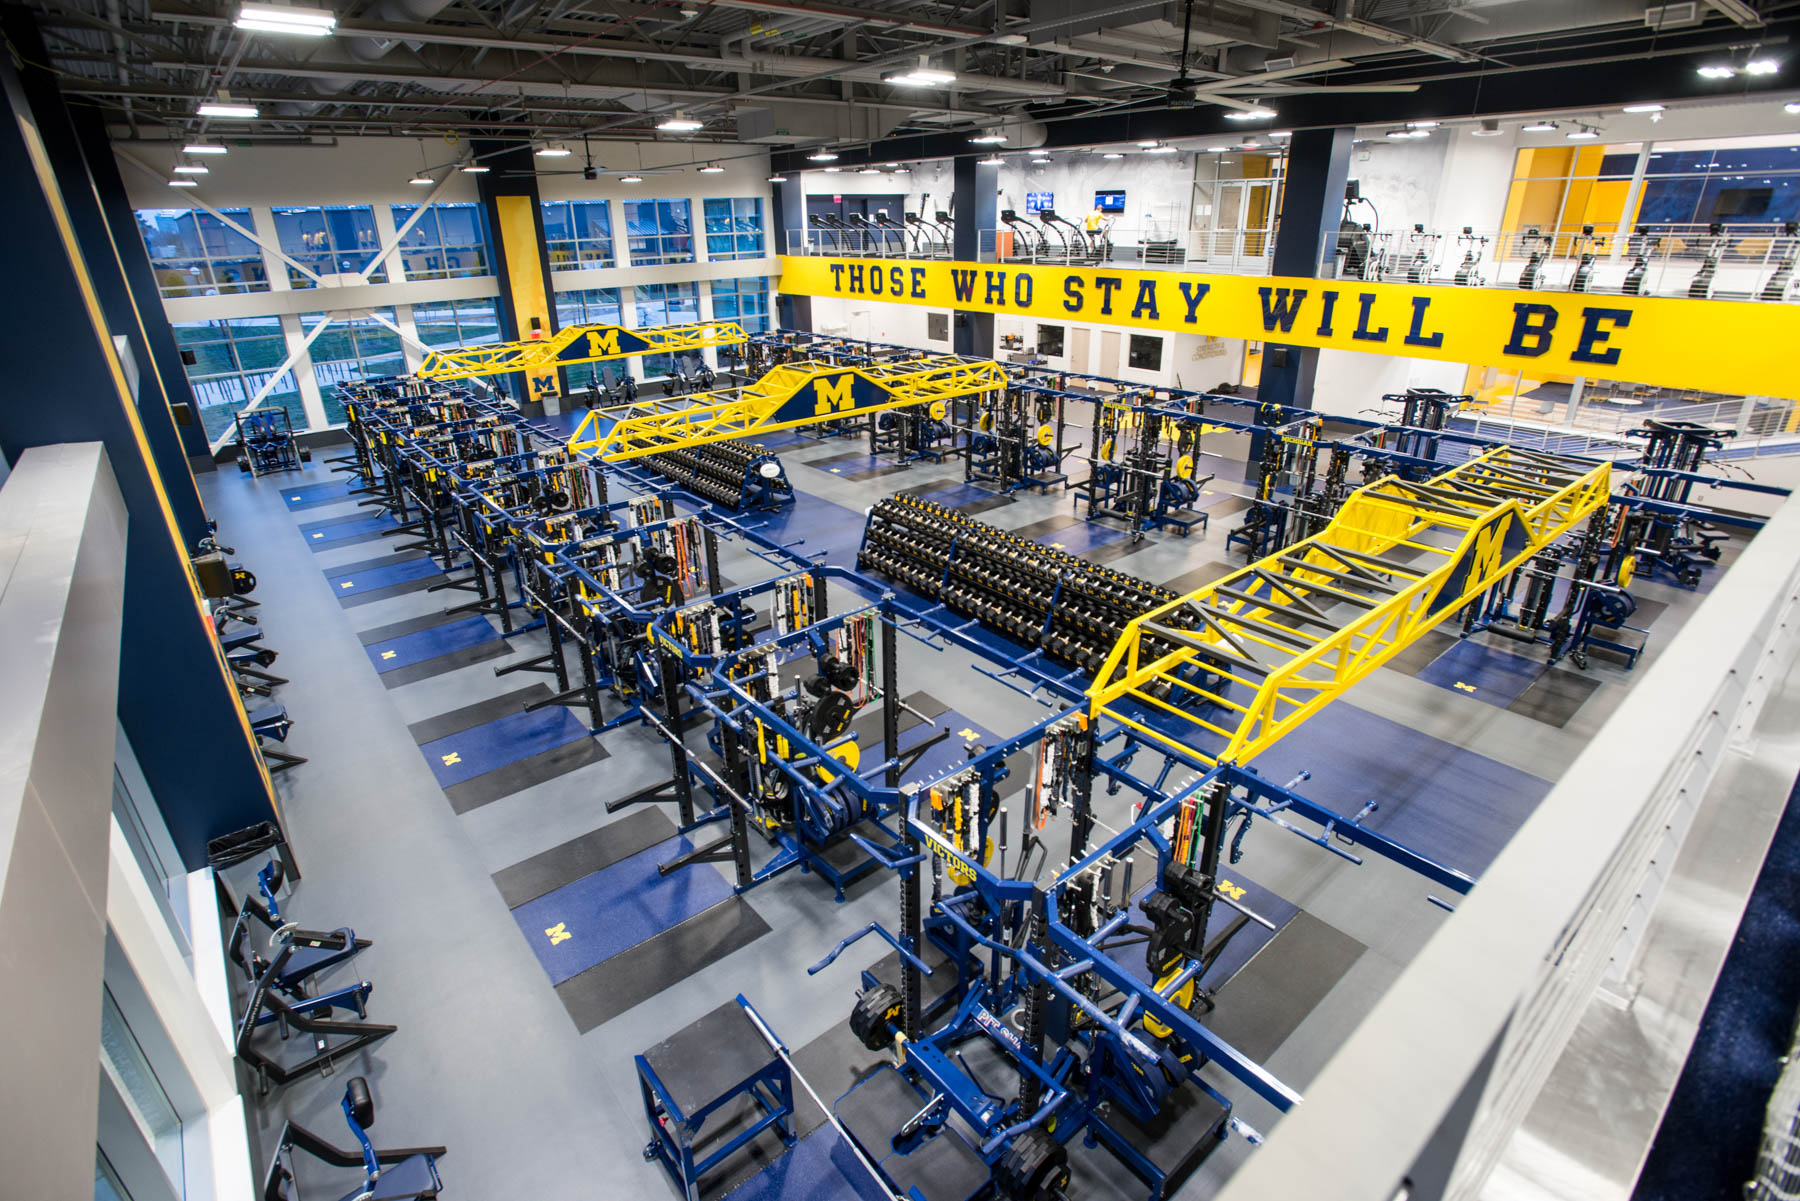 University Of Michigan Fitness Flooring